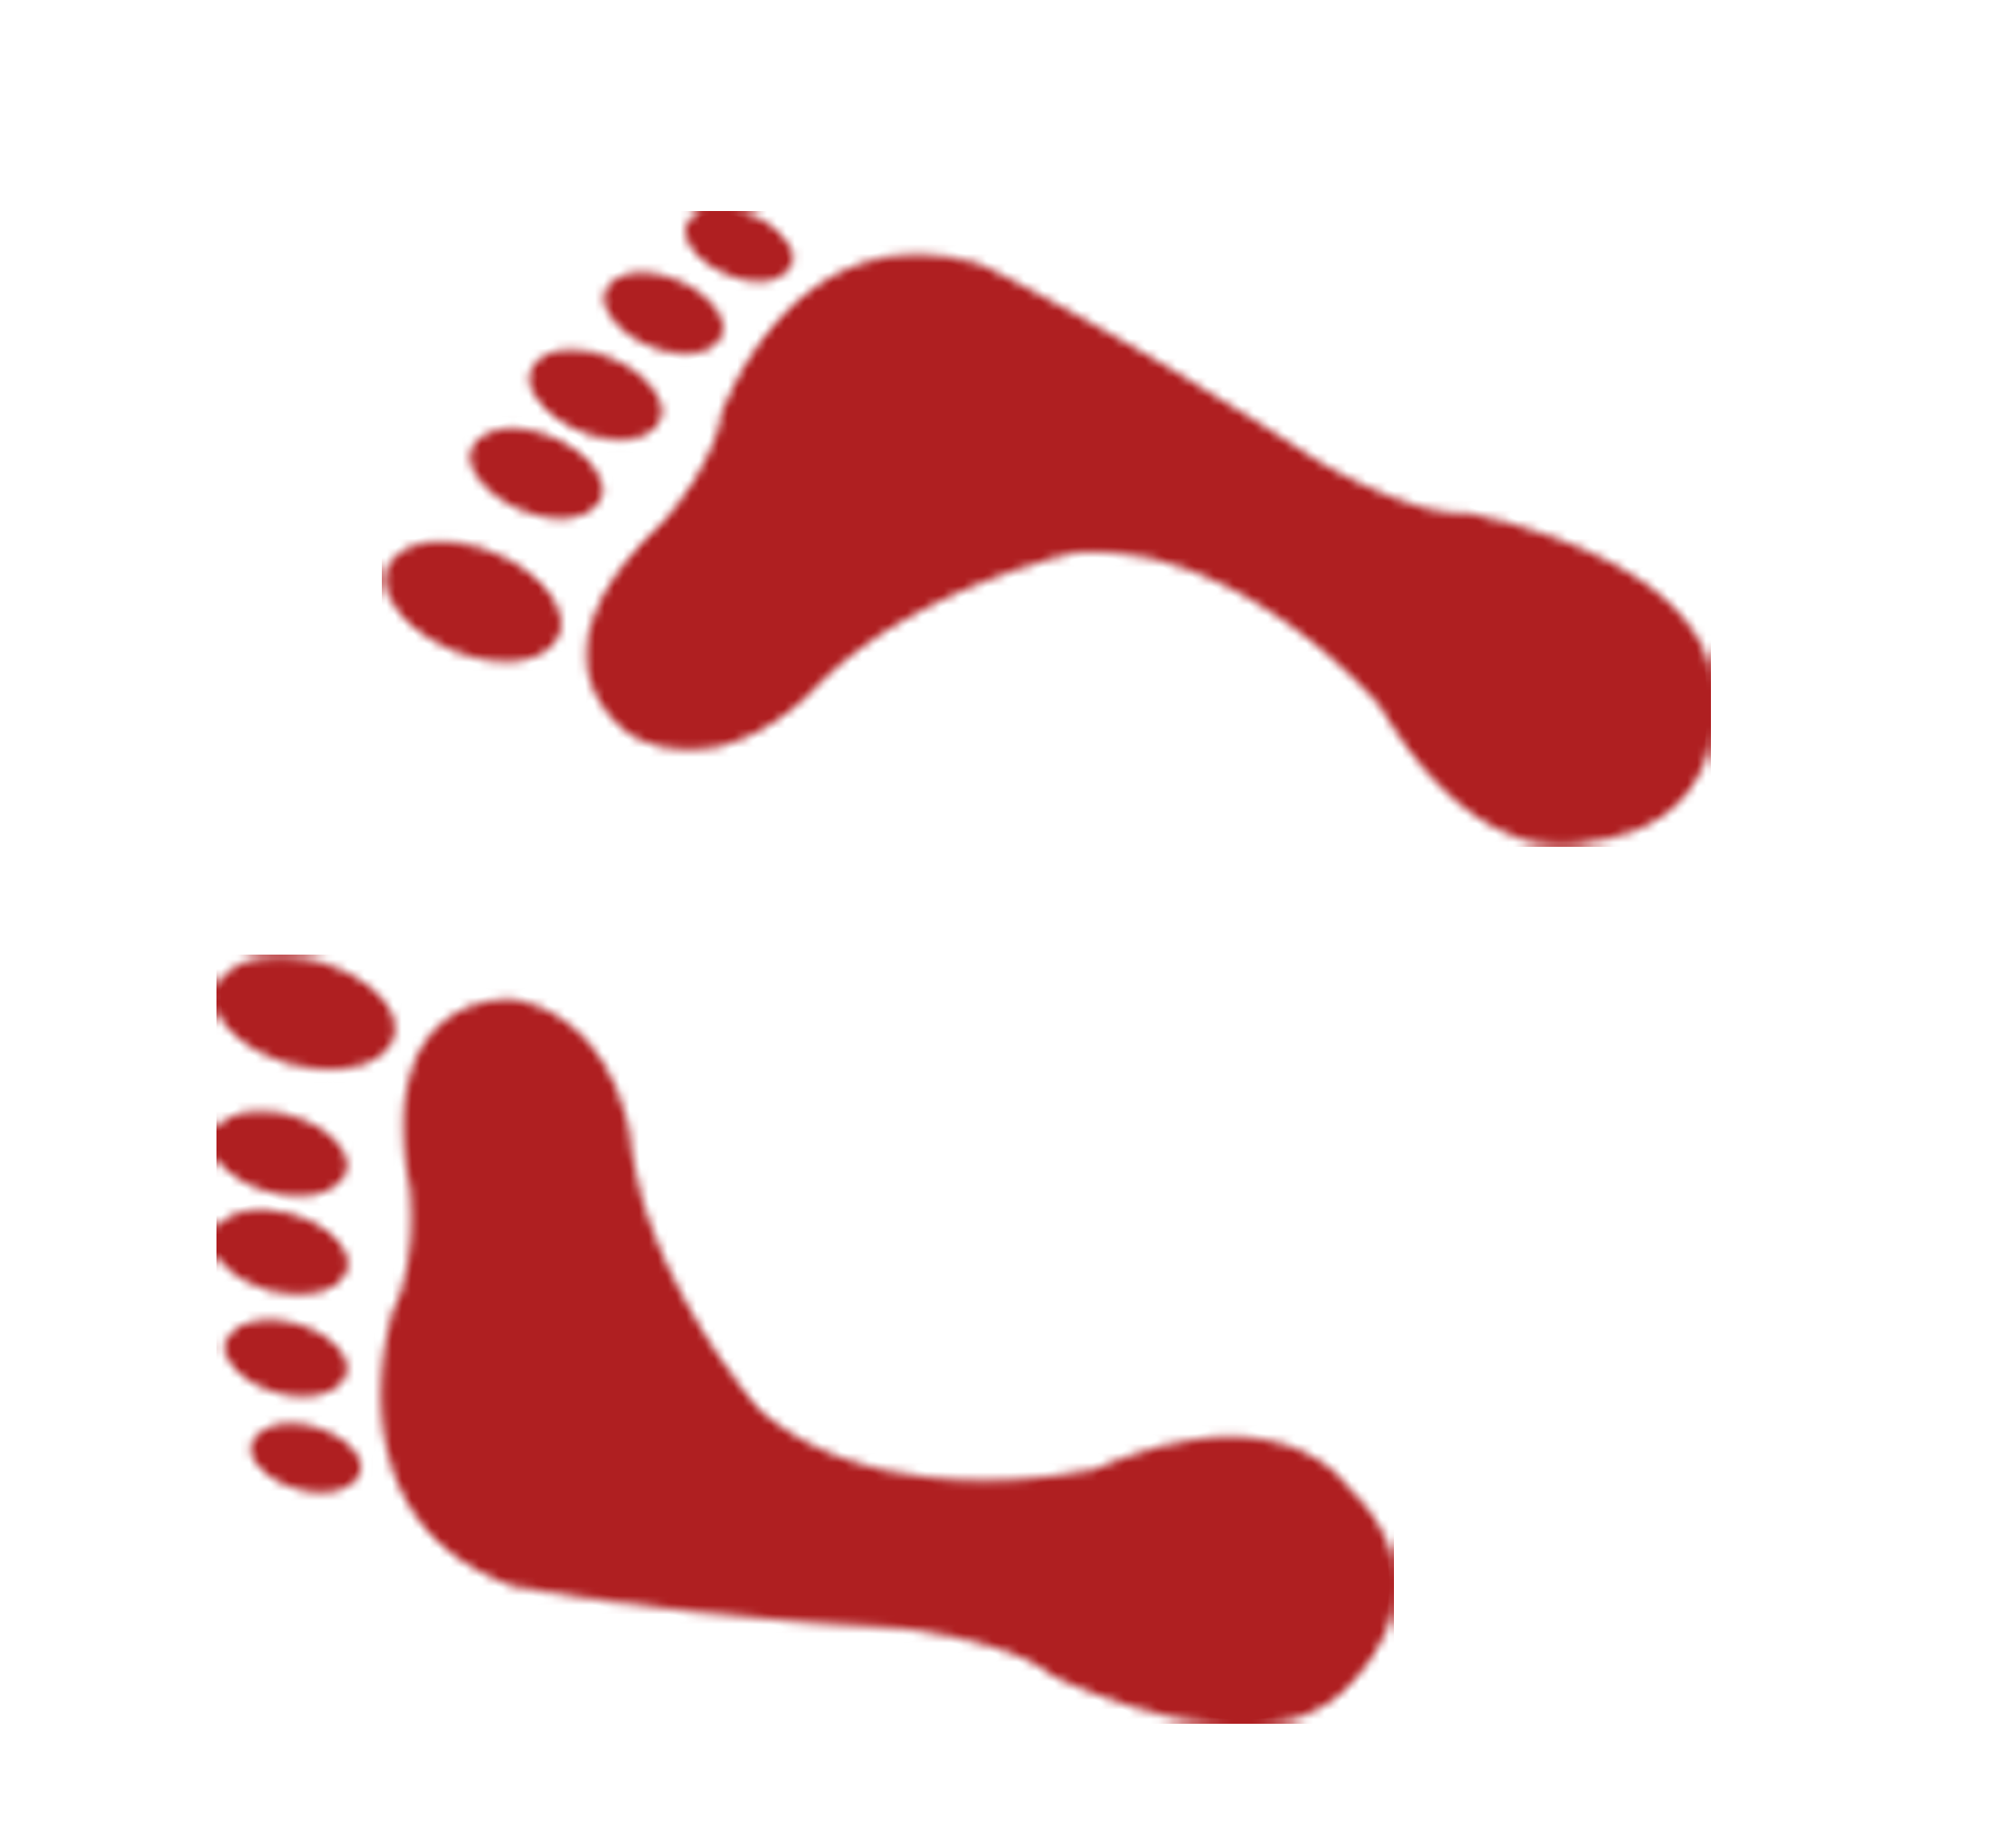 Footprint heart clipart banner freeuse library Red Footprint - Red footprints 2184*2023 transprent Png Free ... banner freeuse library